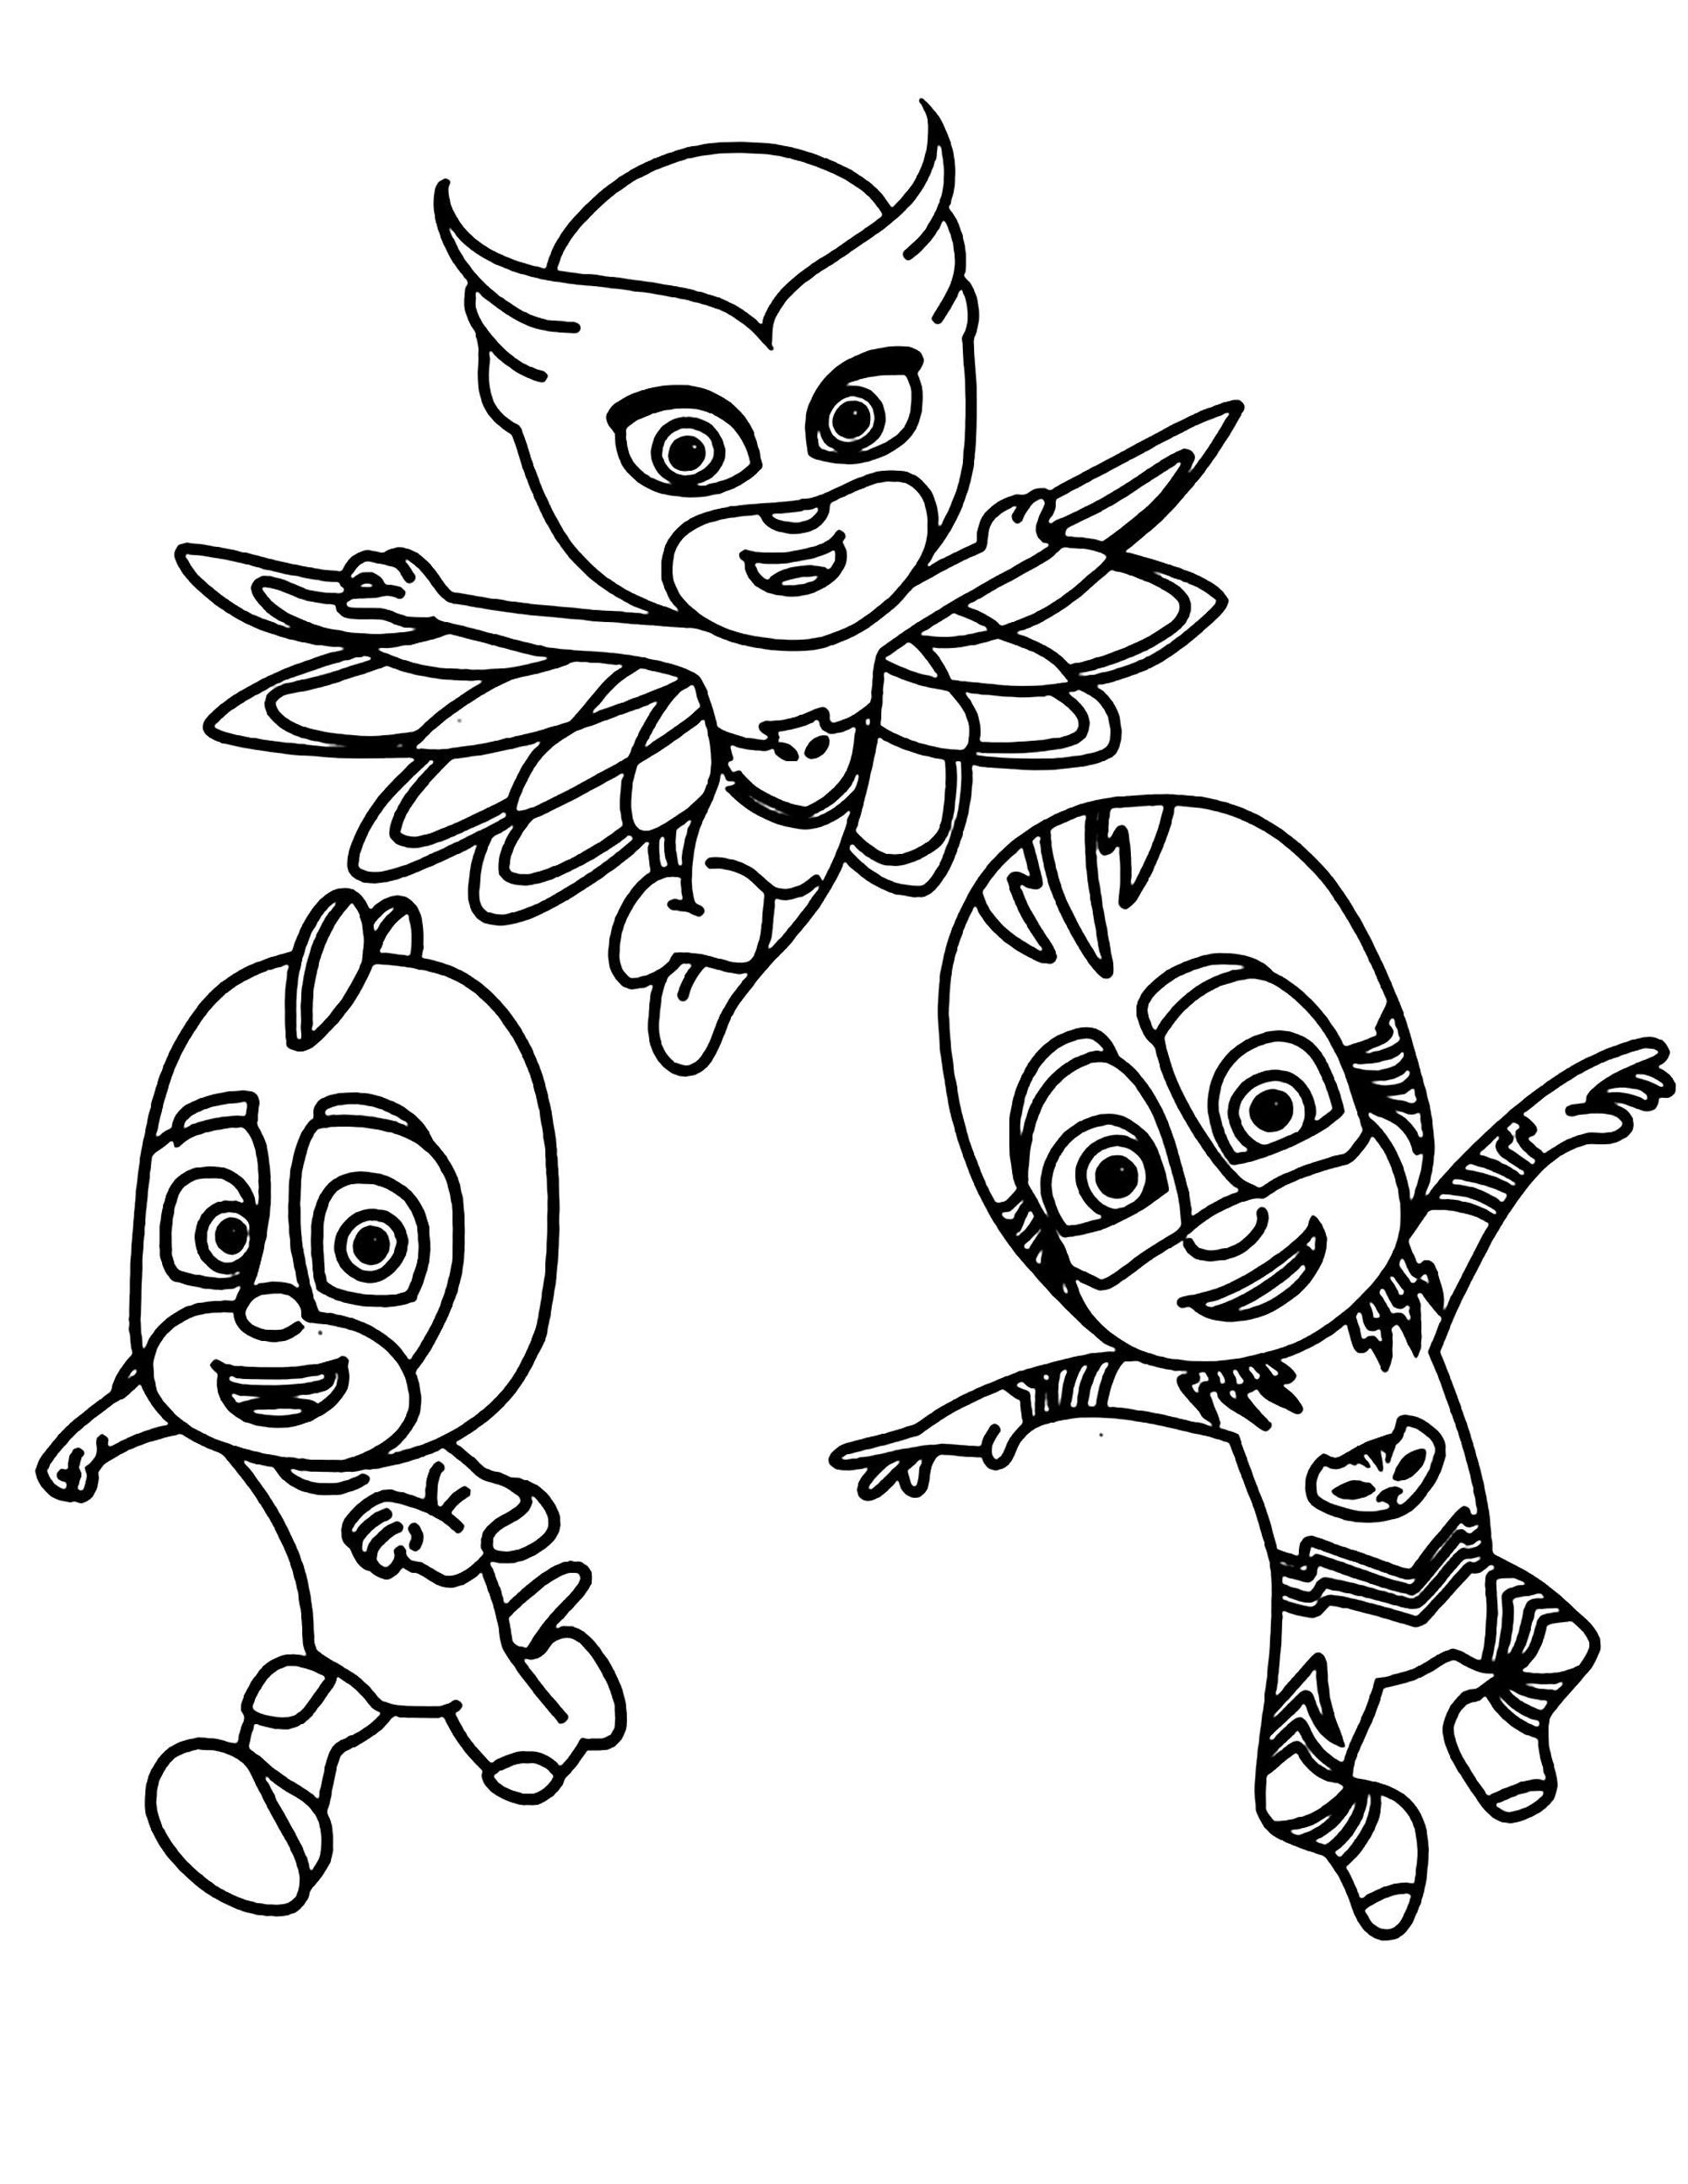 Pin On Printable Colouring Sheets